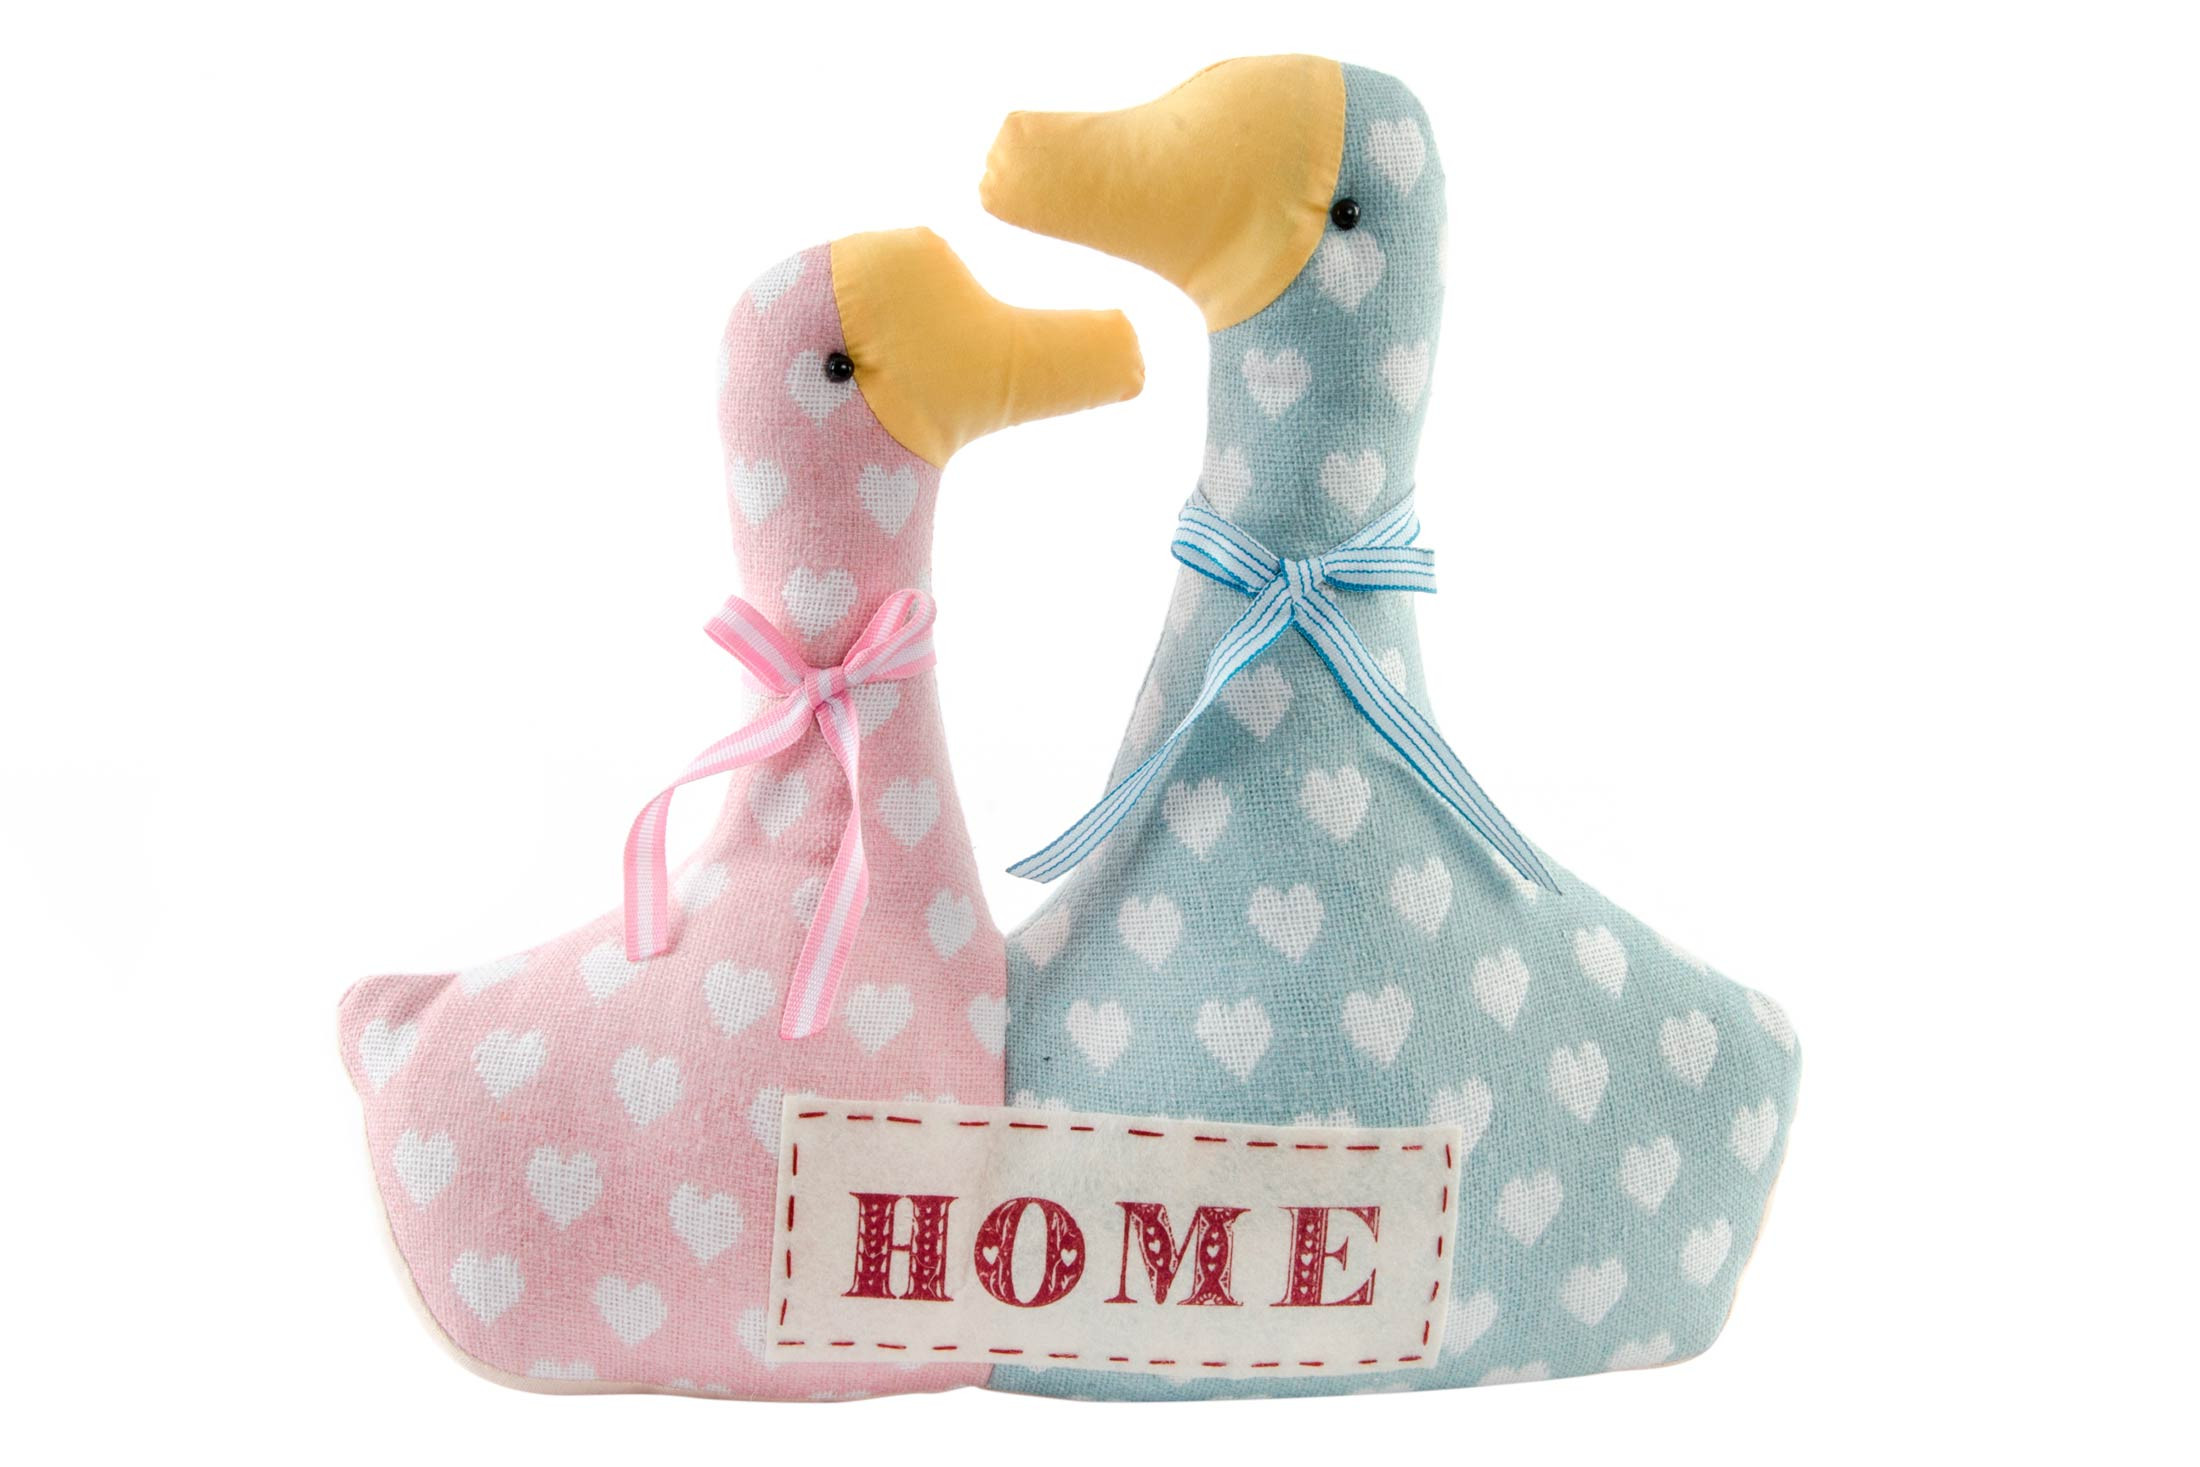 Home and more - Sujetapuerta of ducks in love. Model Home with hearts.